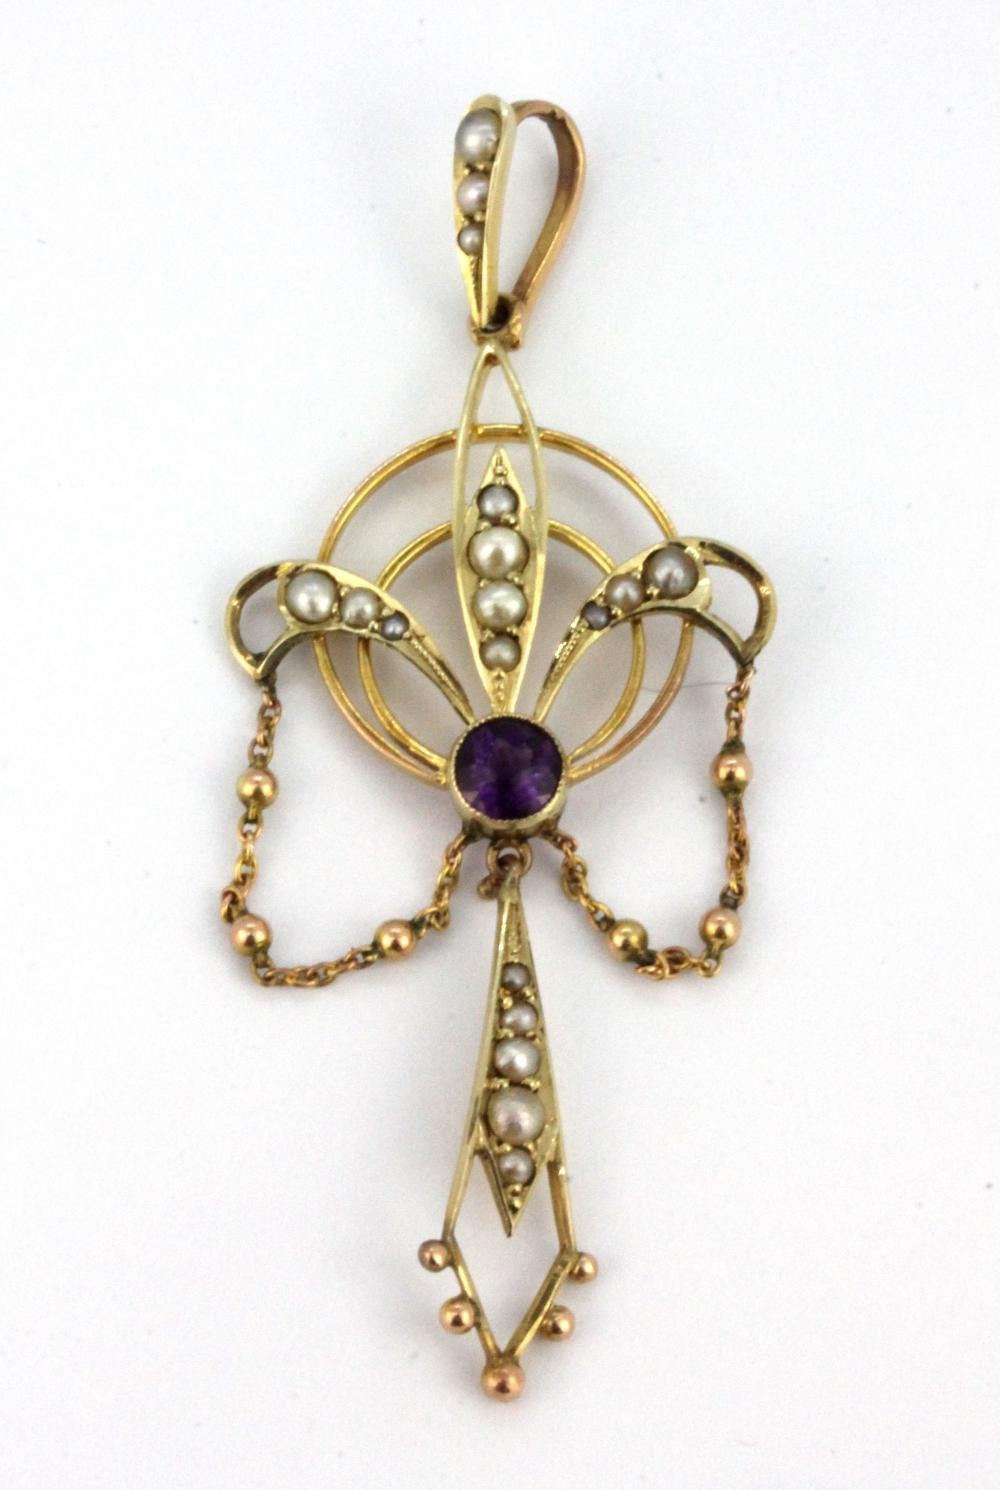 A 9ct yellow gold (stamped 9ct) pendant set with amethyst and seed pearls, L. 5.5cm.